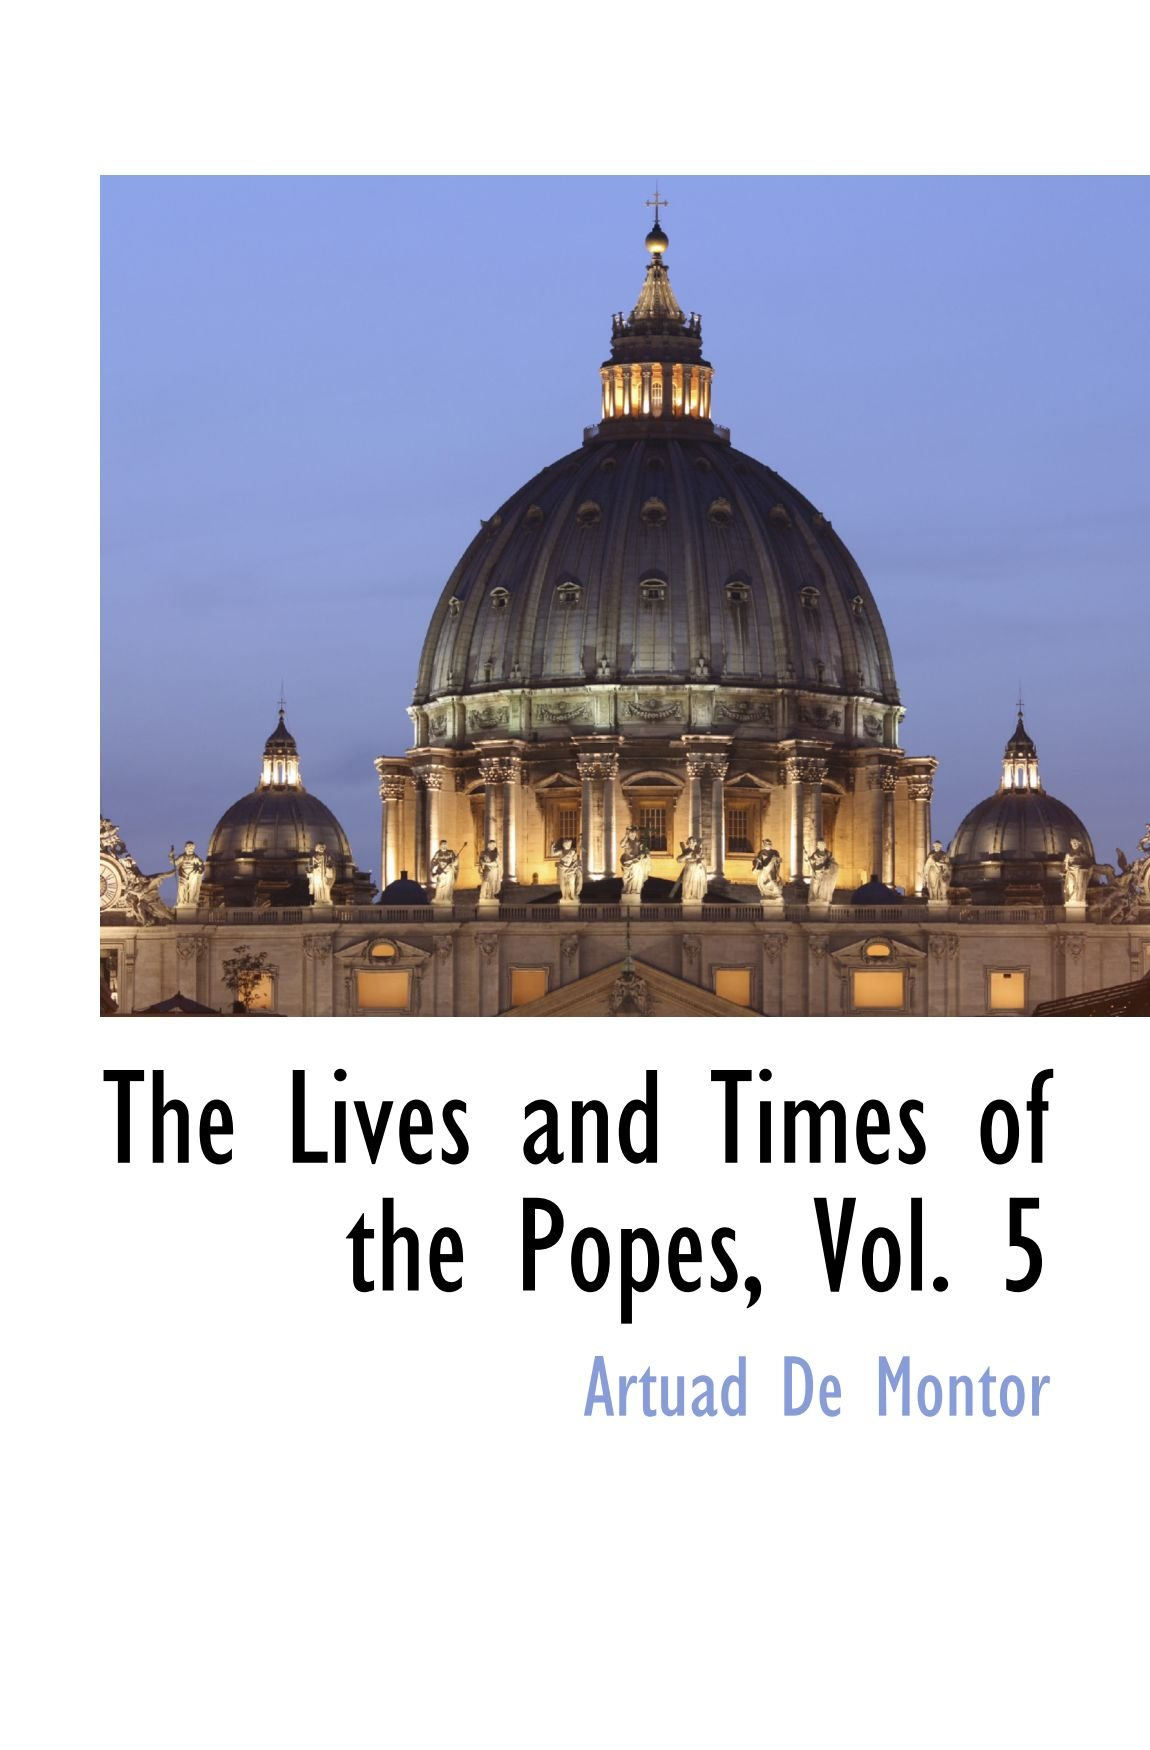 The Lives and Times of the Popes, Vol. 5 pdf